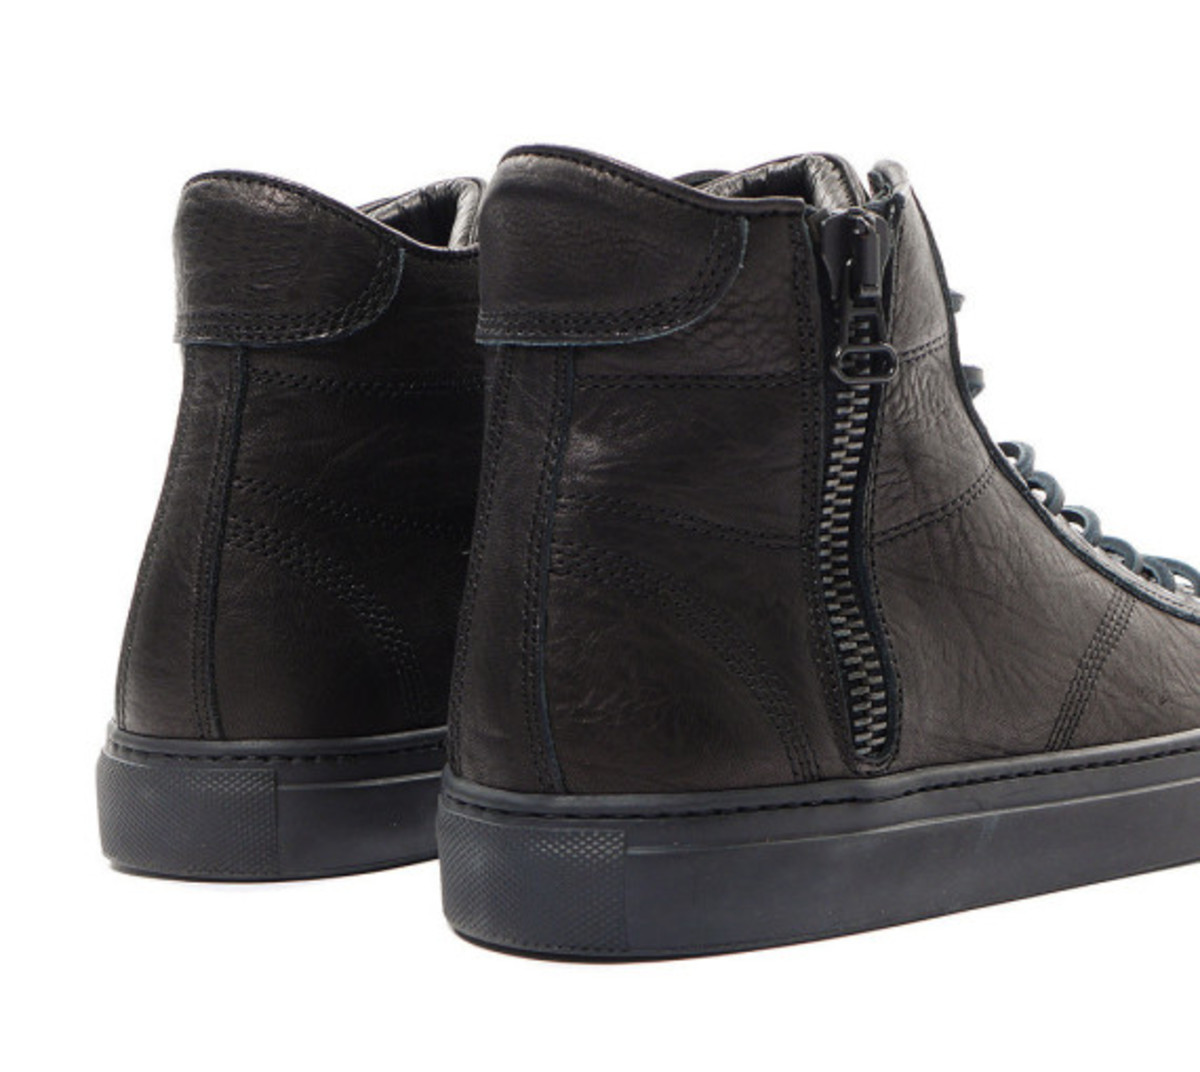 wings-and-horns-leather-hi-top-sneaker-07